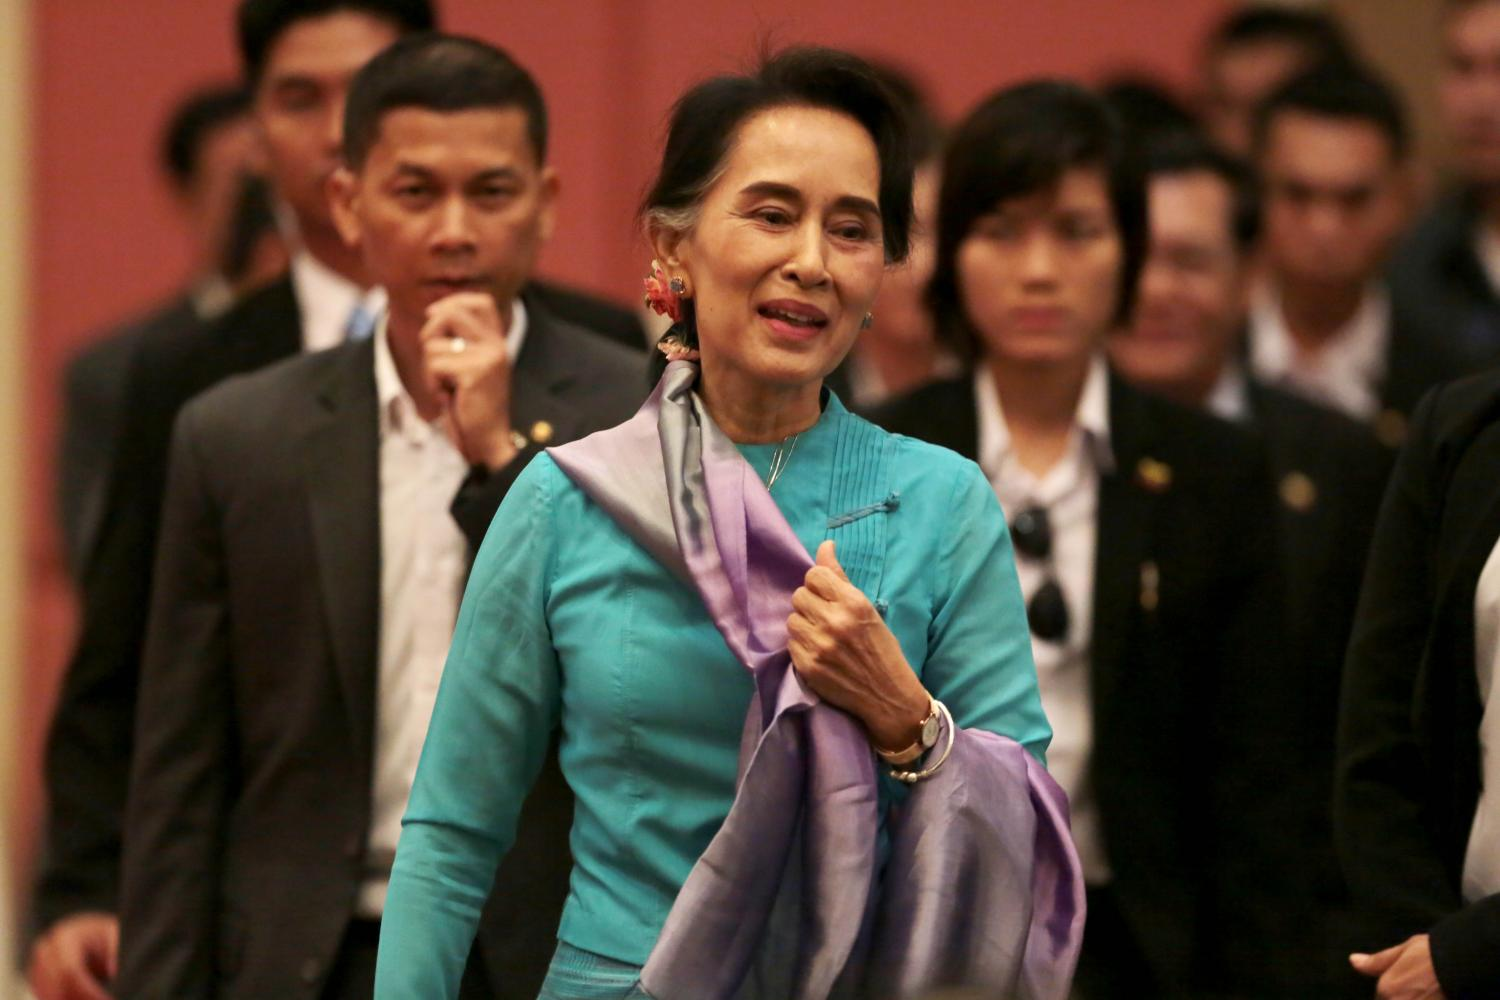 NLD leader Aung San Suu Kyi has been detained since Feb 1 but her whereabouts are still unknown.(Photo by Chanat Katanyu)